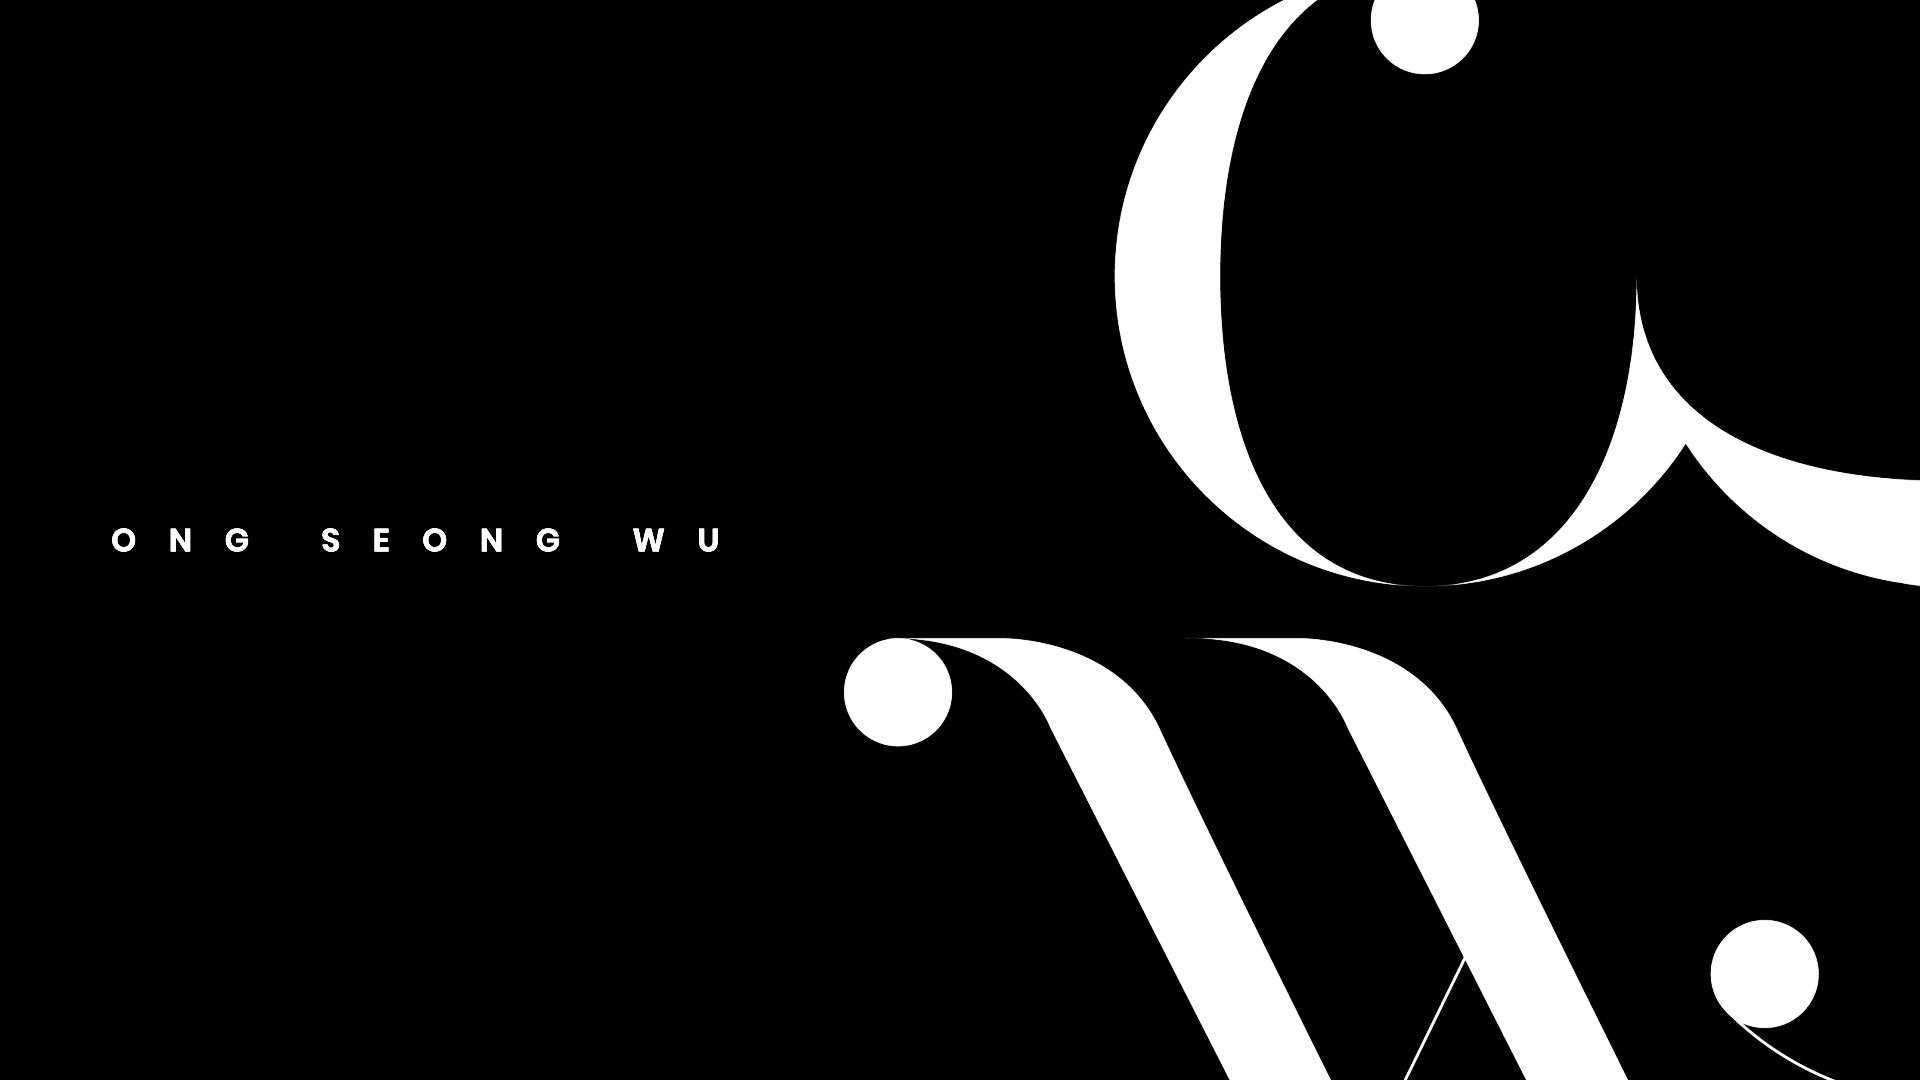 ONG SEONG WU 옹성우 - OFFICIAL LOGO MOTION